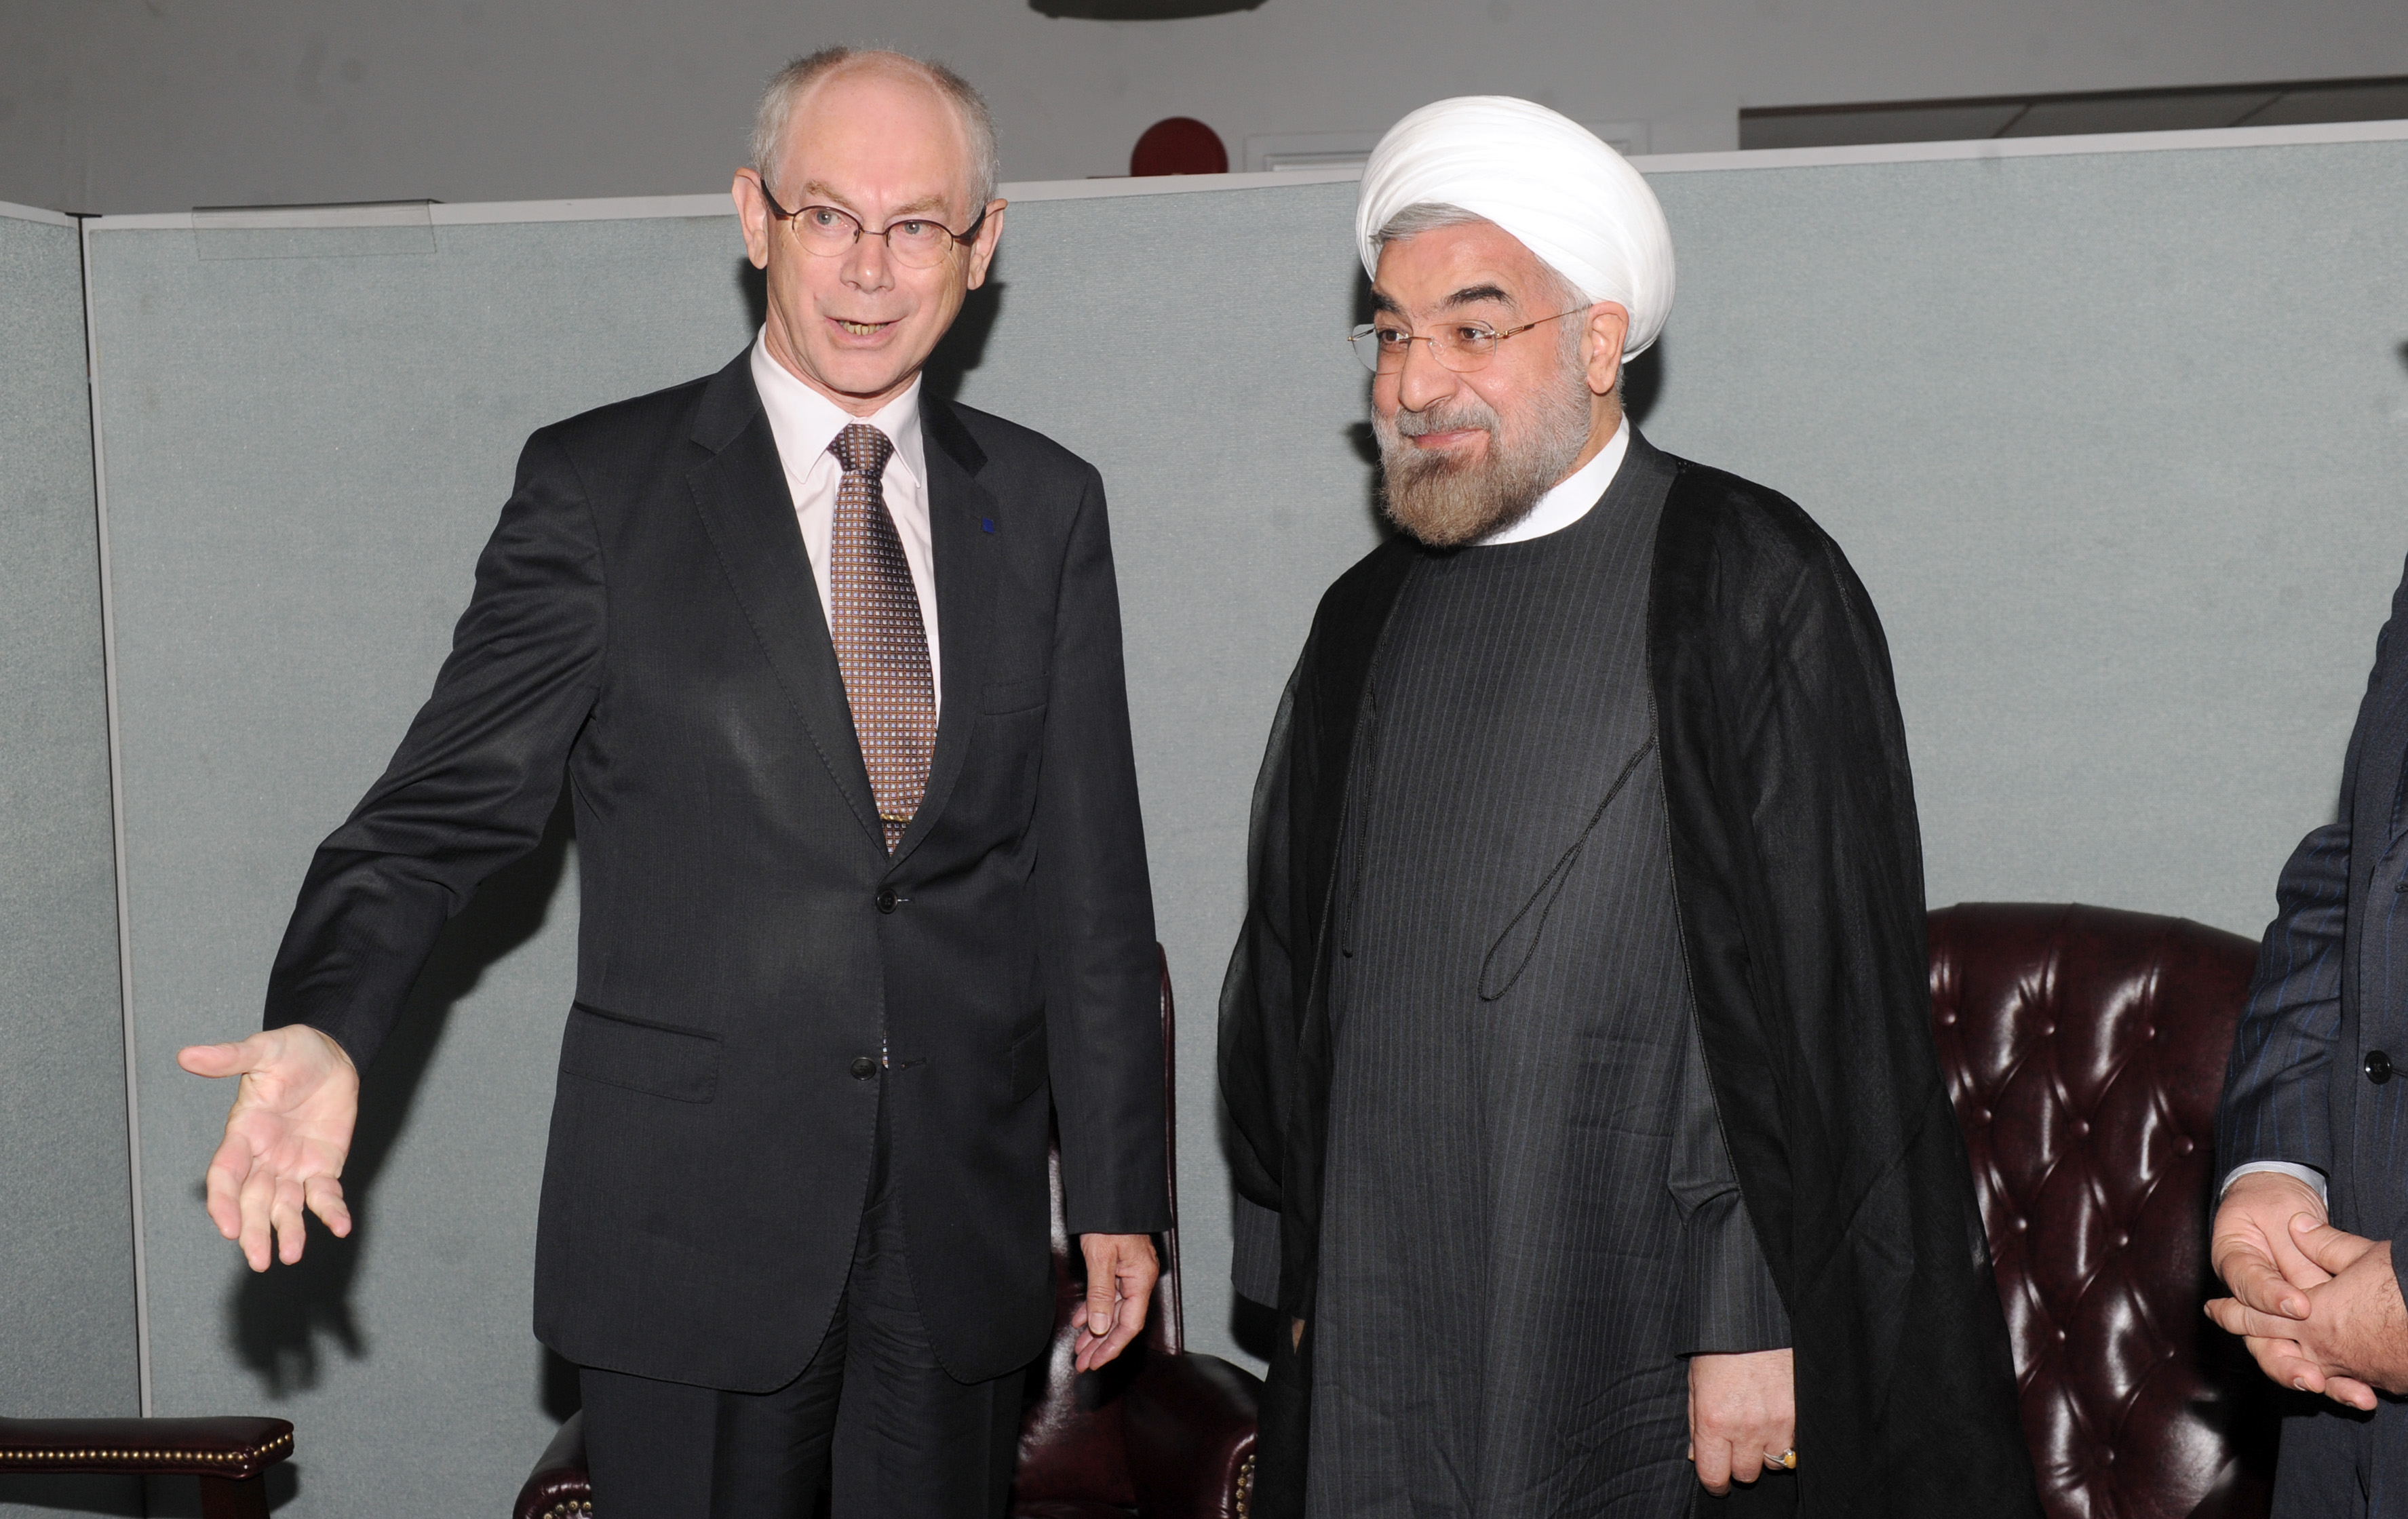 President Hassan Rouhani of Iran (photo credit: European External Action Service/flickr)